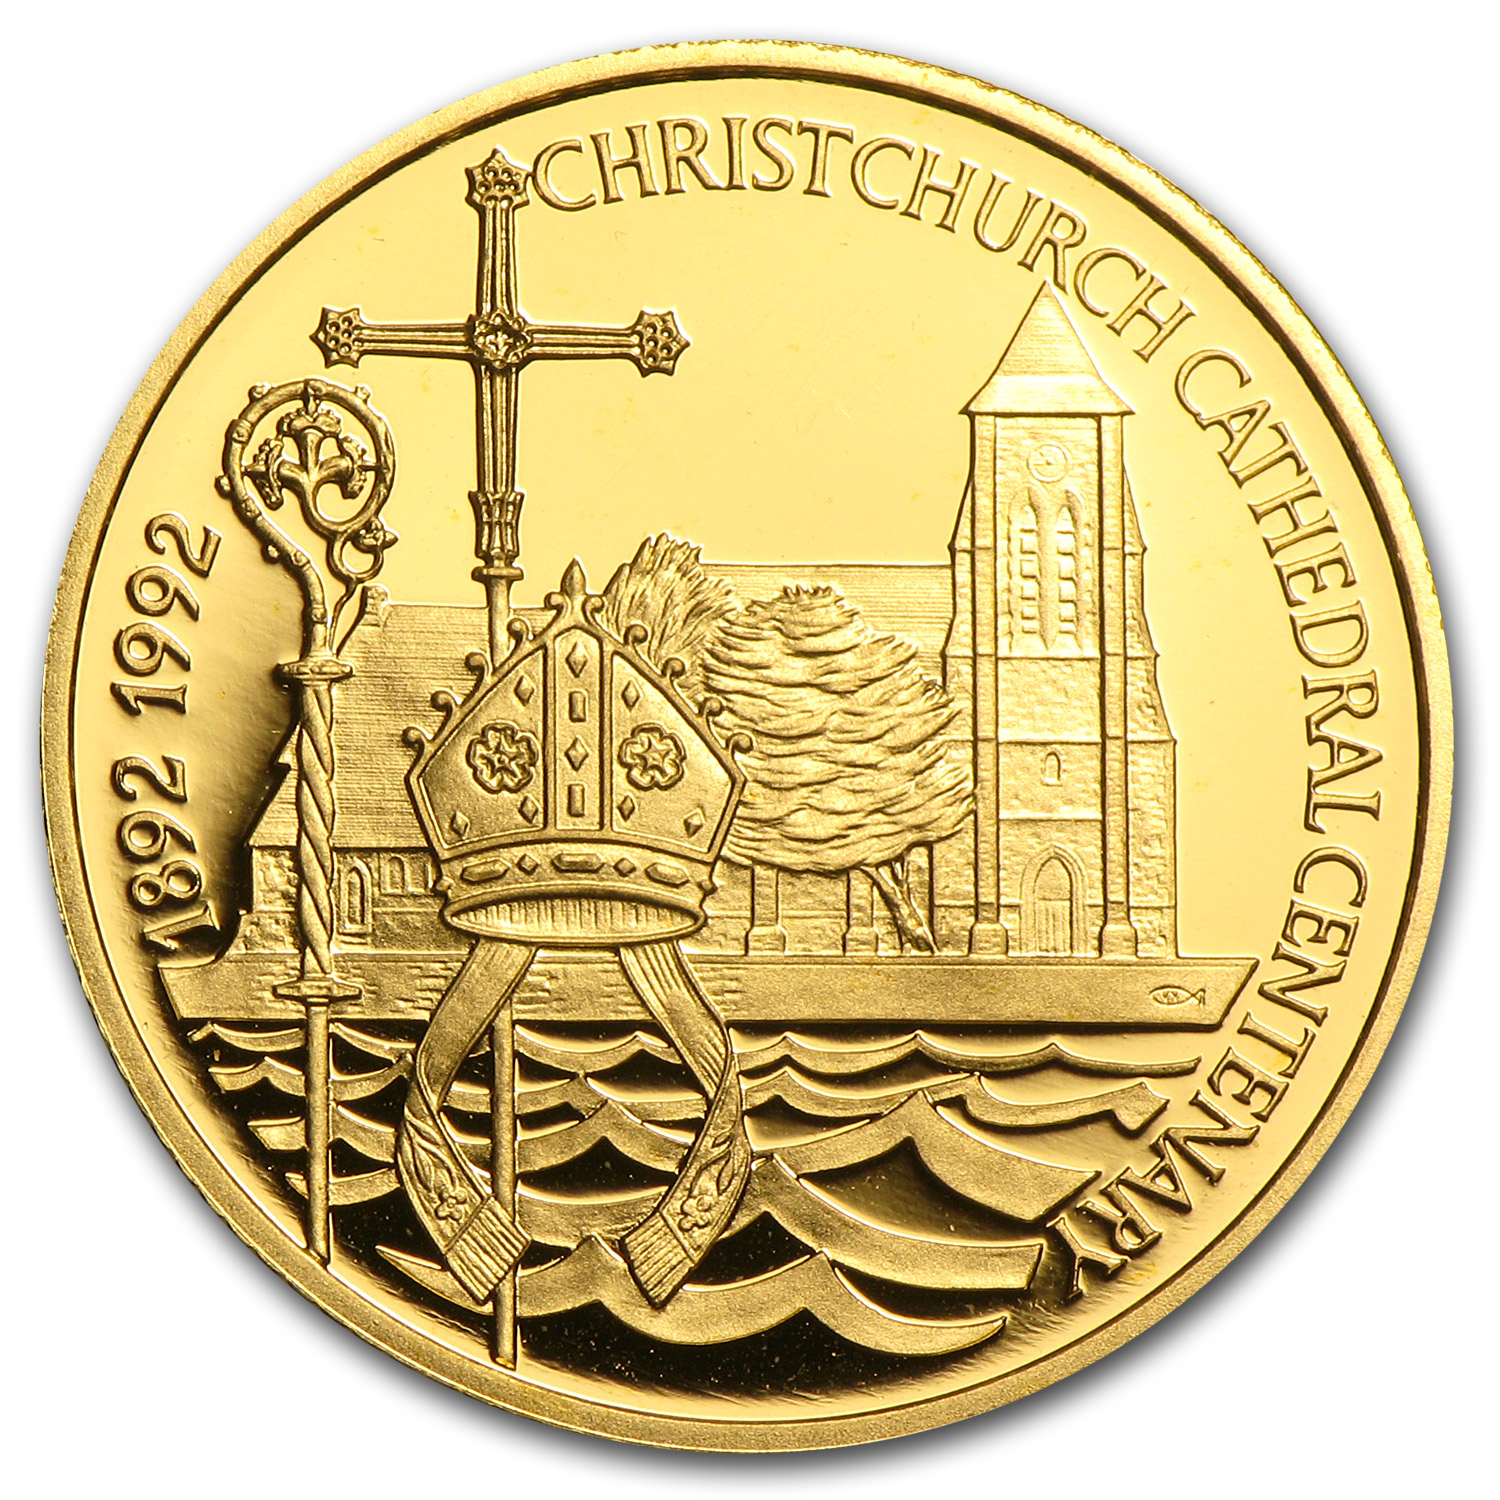 Falkland Islands 1992 Gold 25 Pounds Proof